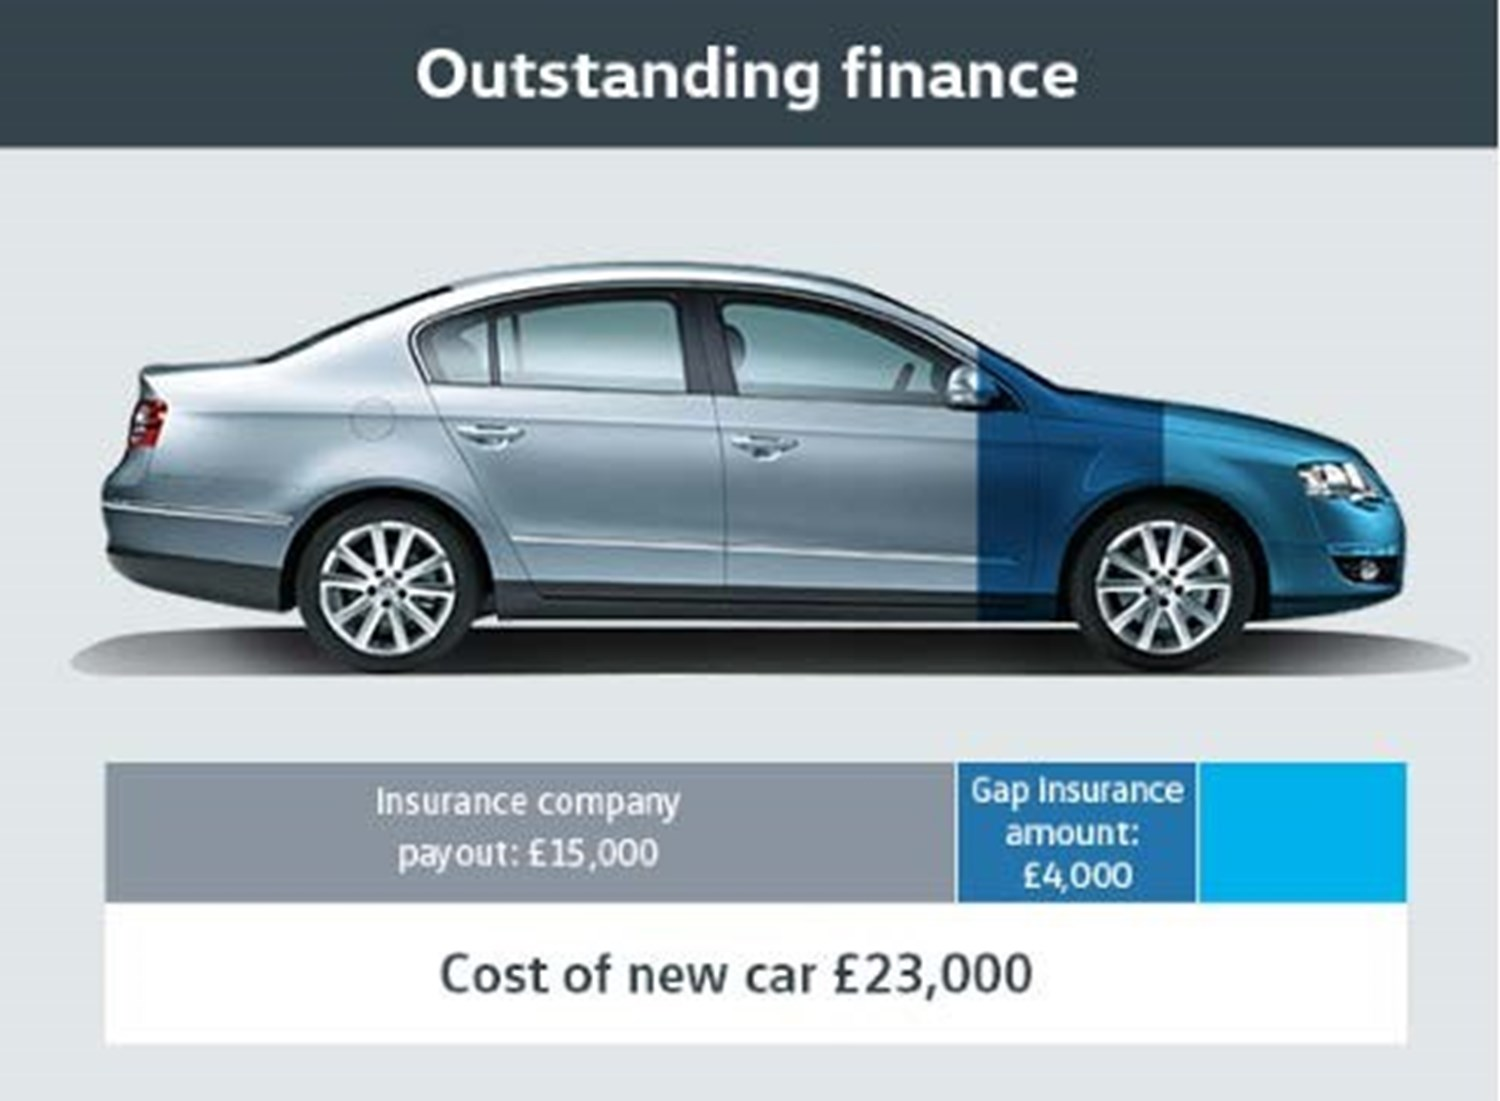 Outstanding Finance example with silver Volkswagen Passat